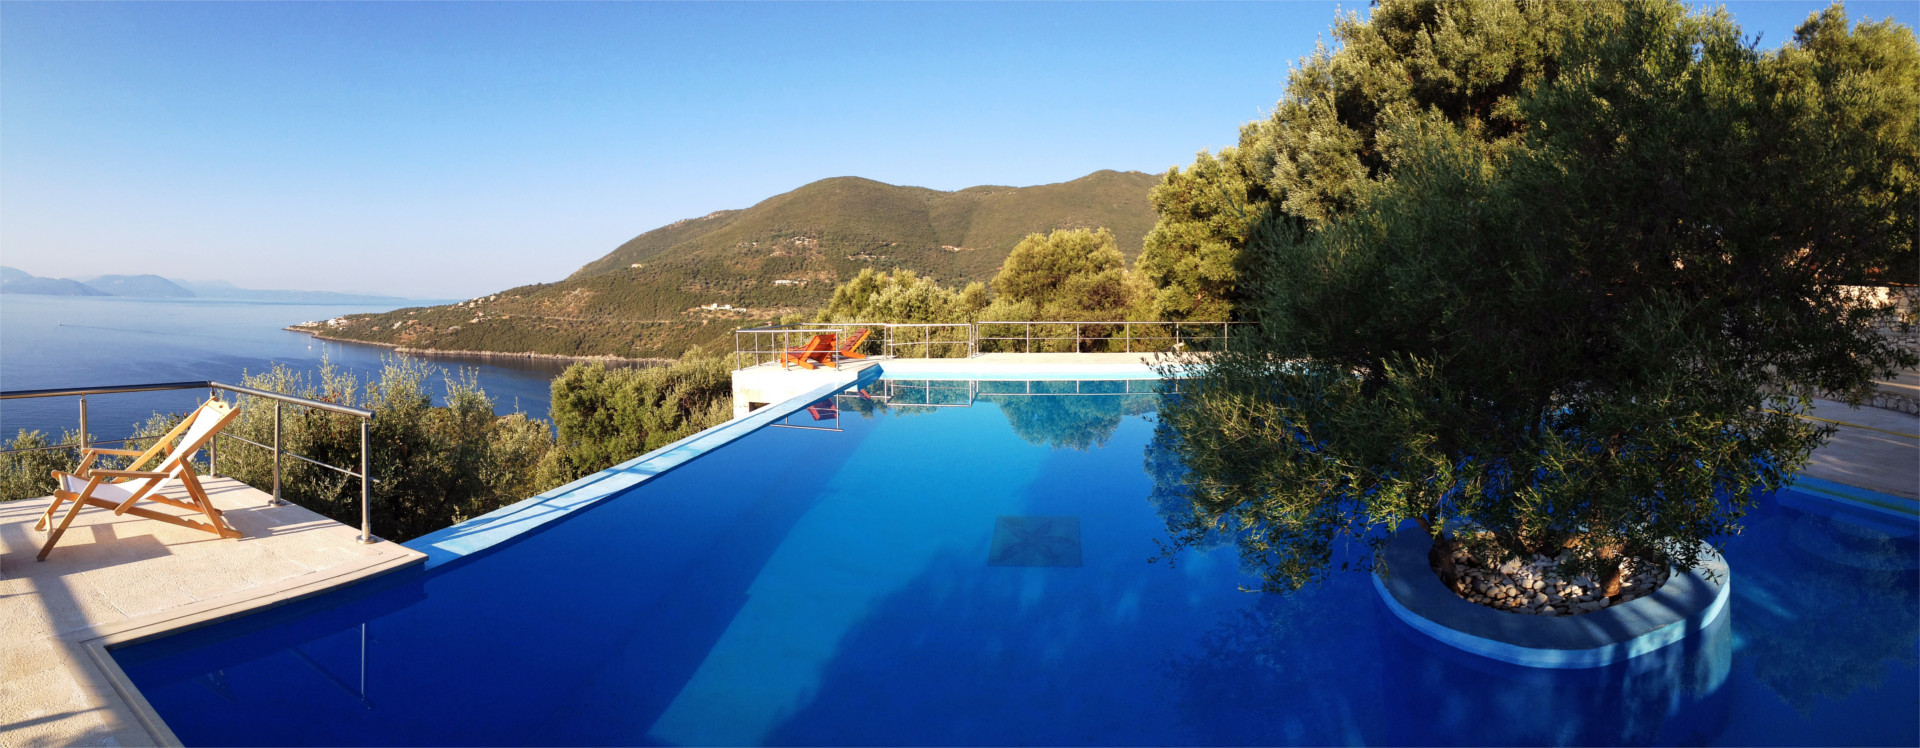 The villa's pool